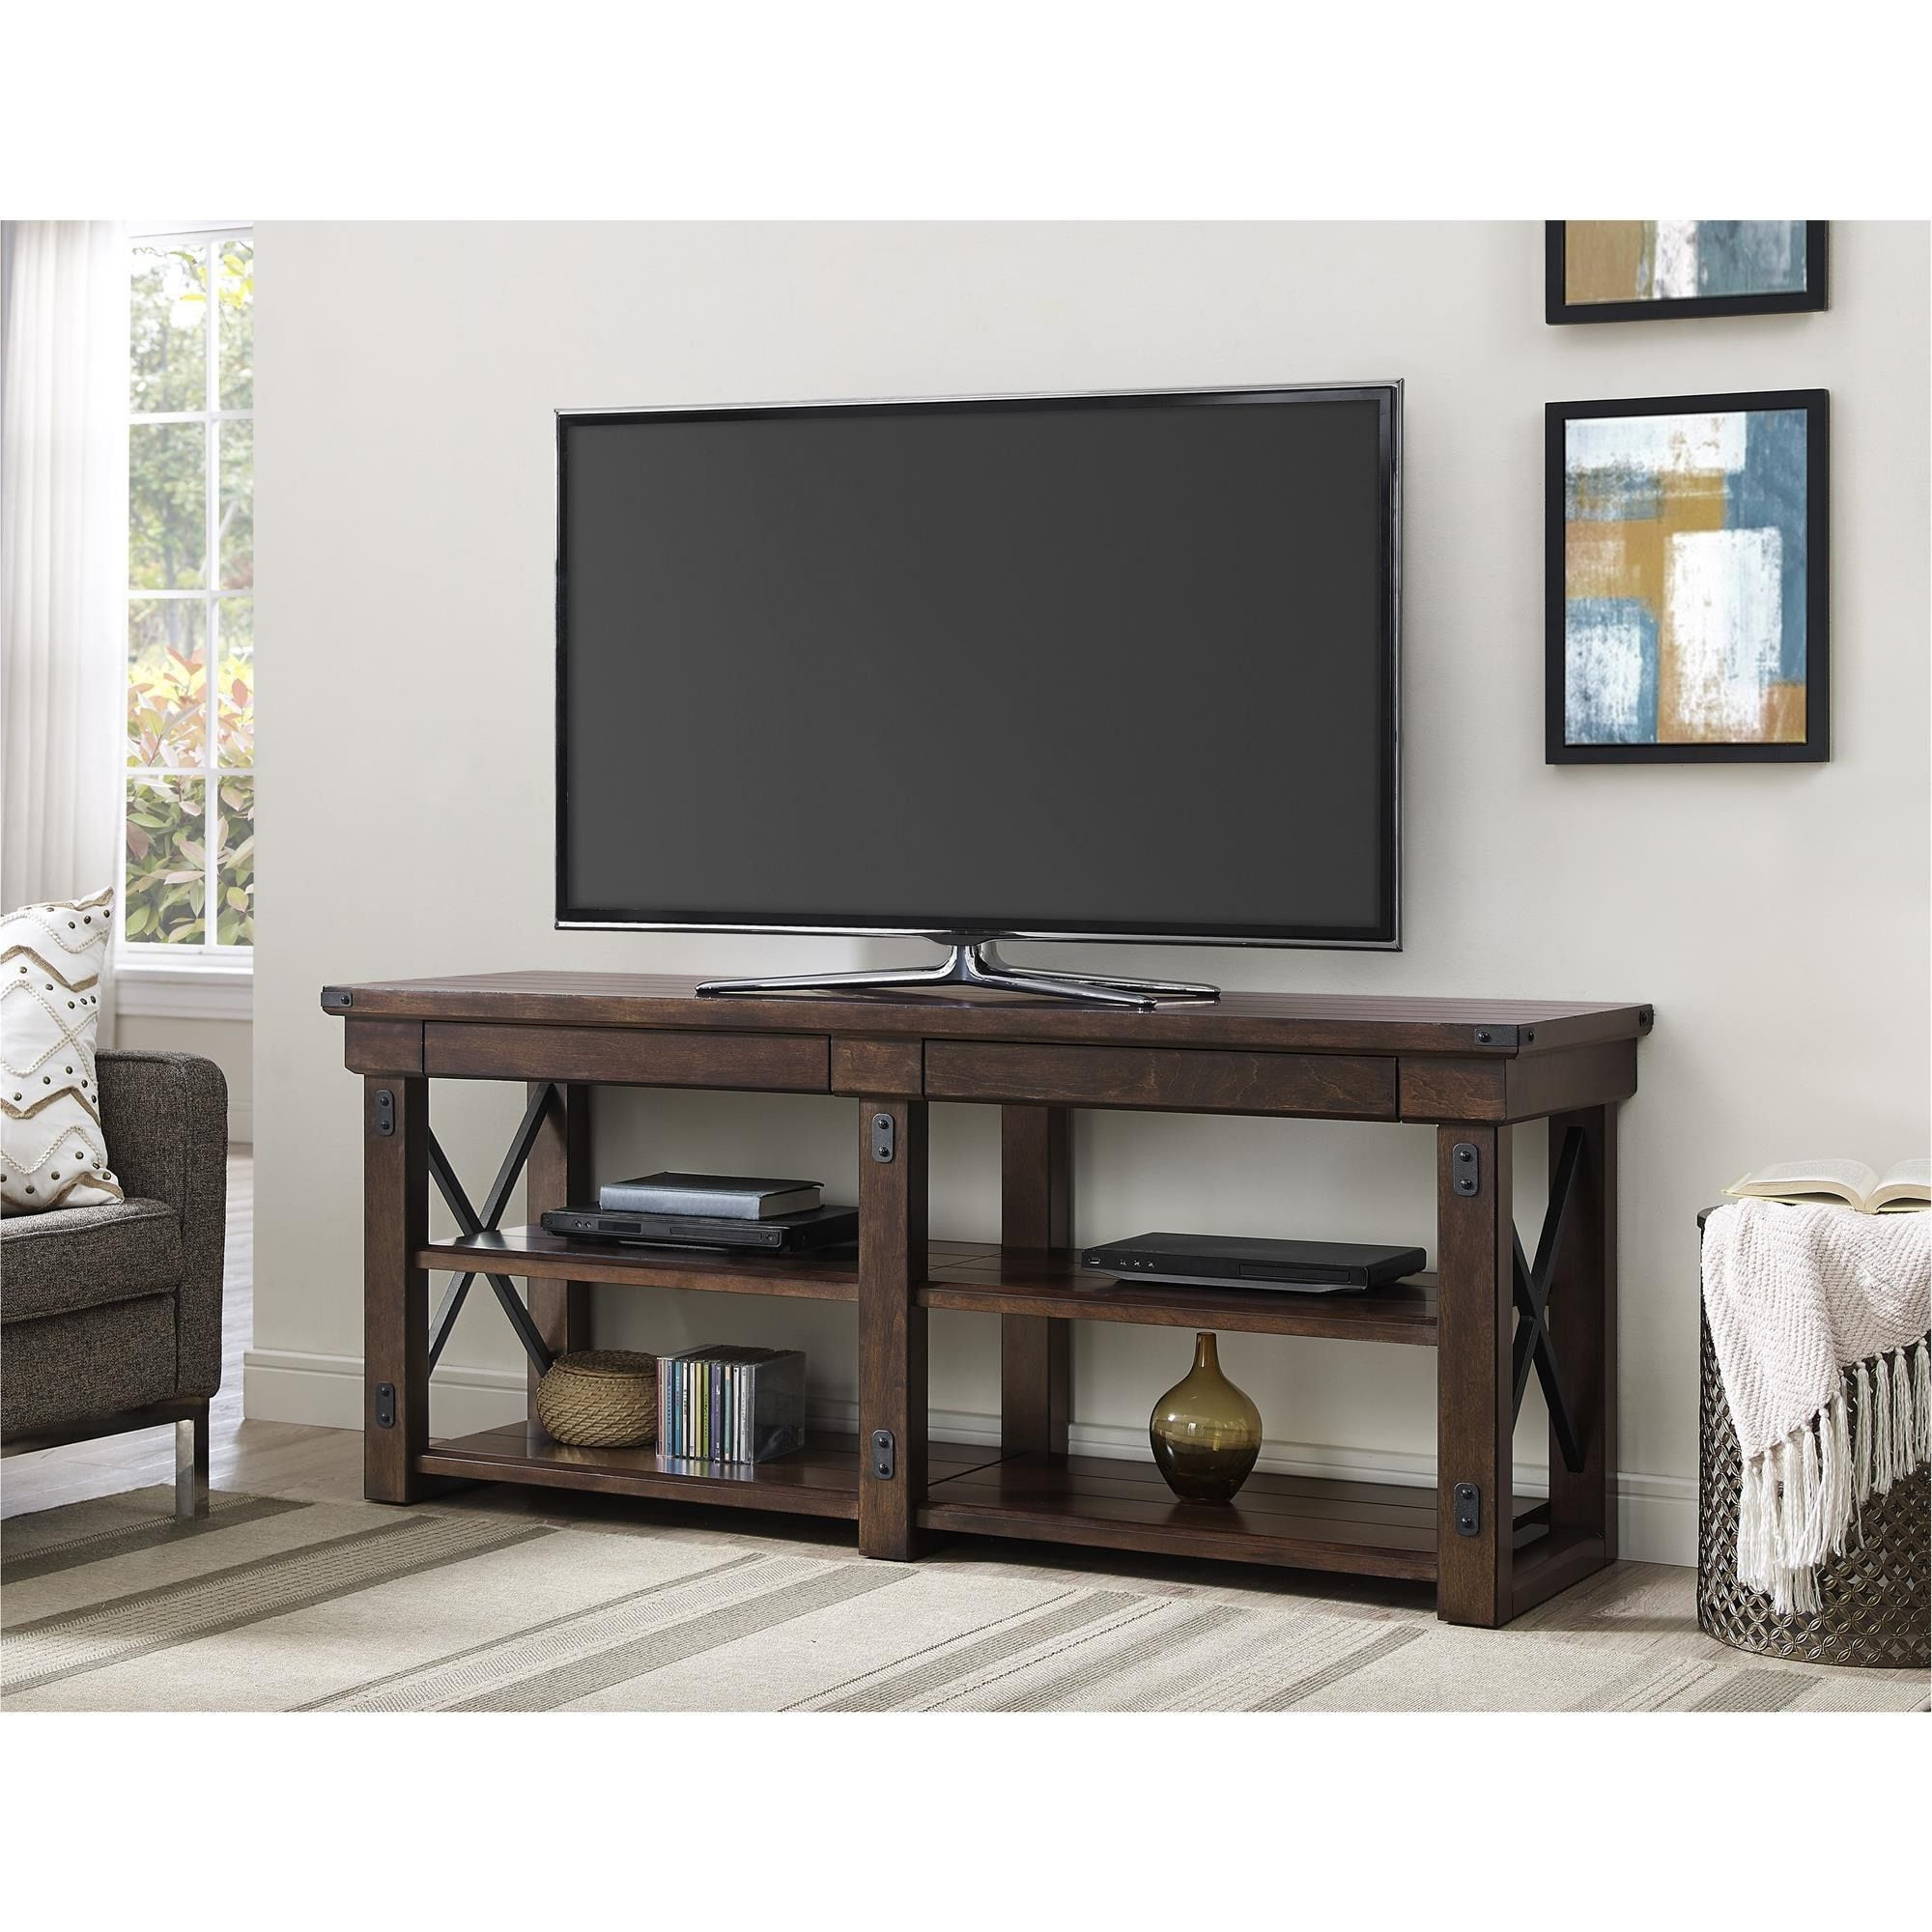 Ameriwood Home Wildwood Mahogany Veneer 65 Inch Tv Stand (65 Inch Tv In Latest Noah Rustic White 66 Inch Tv Stands (Gallery 4 of 20)